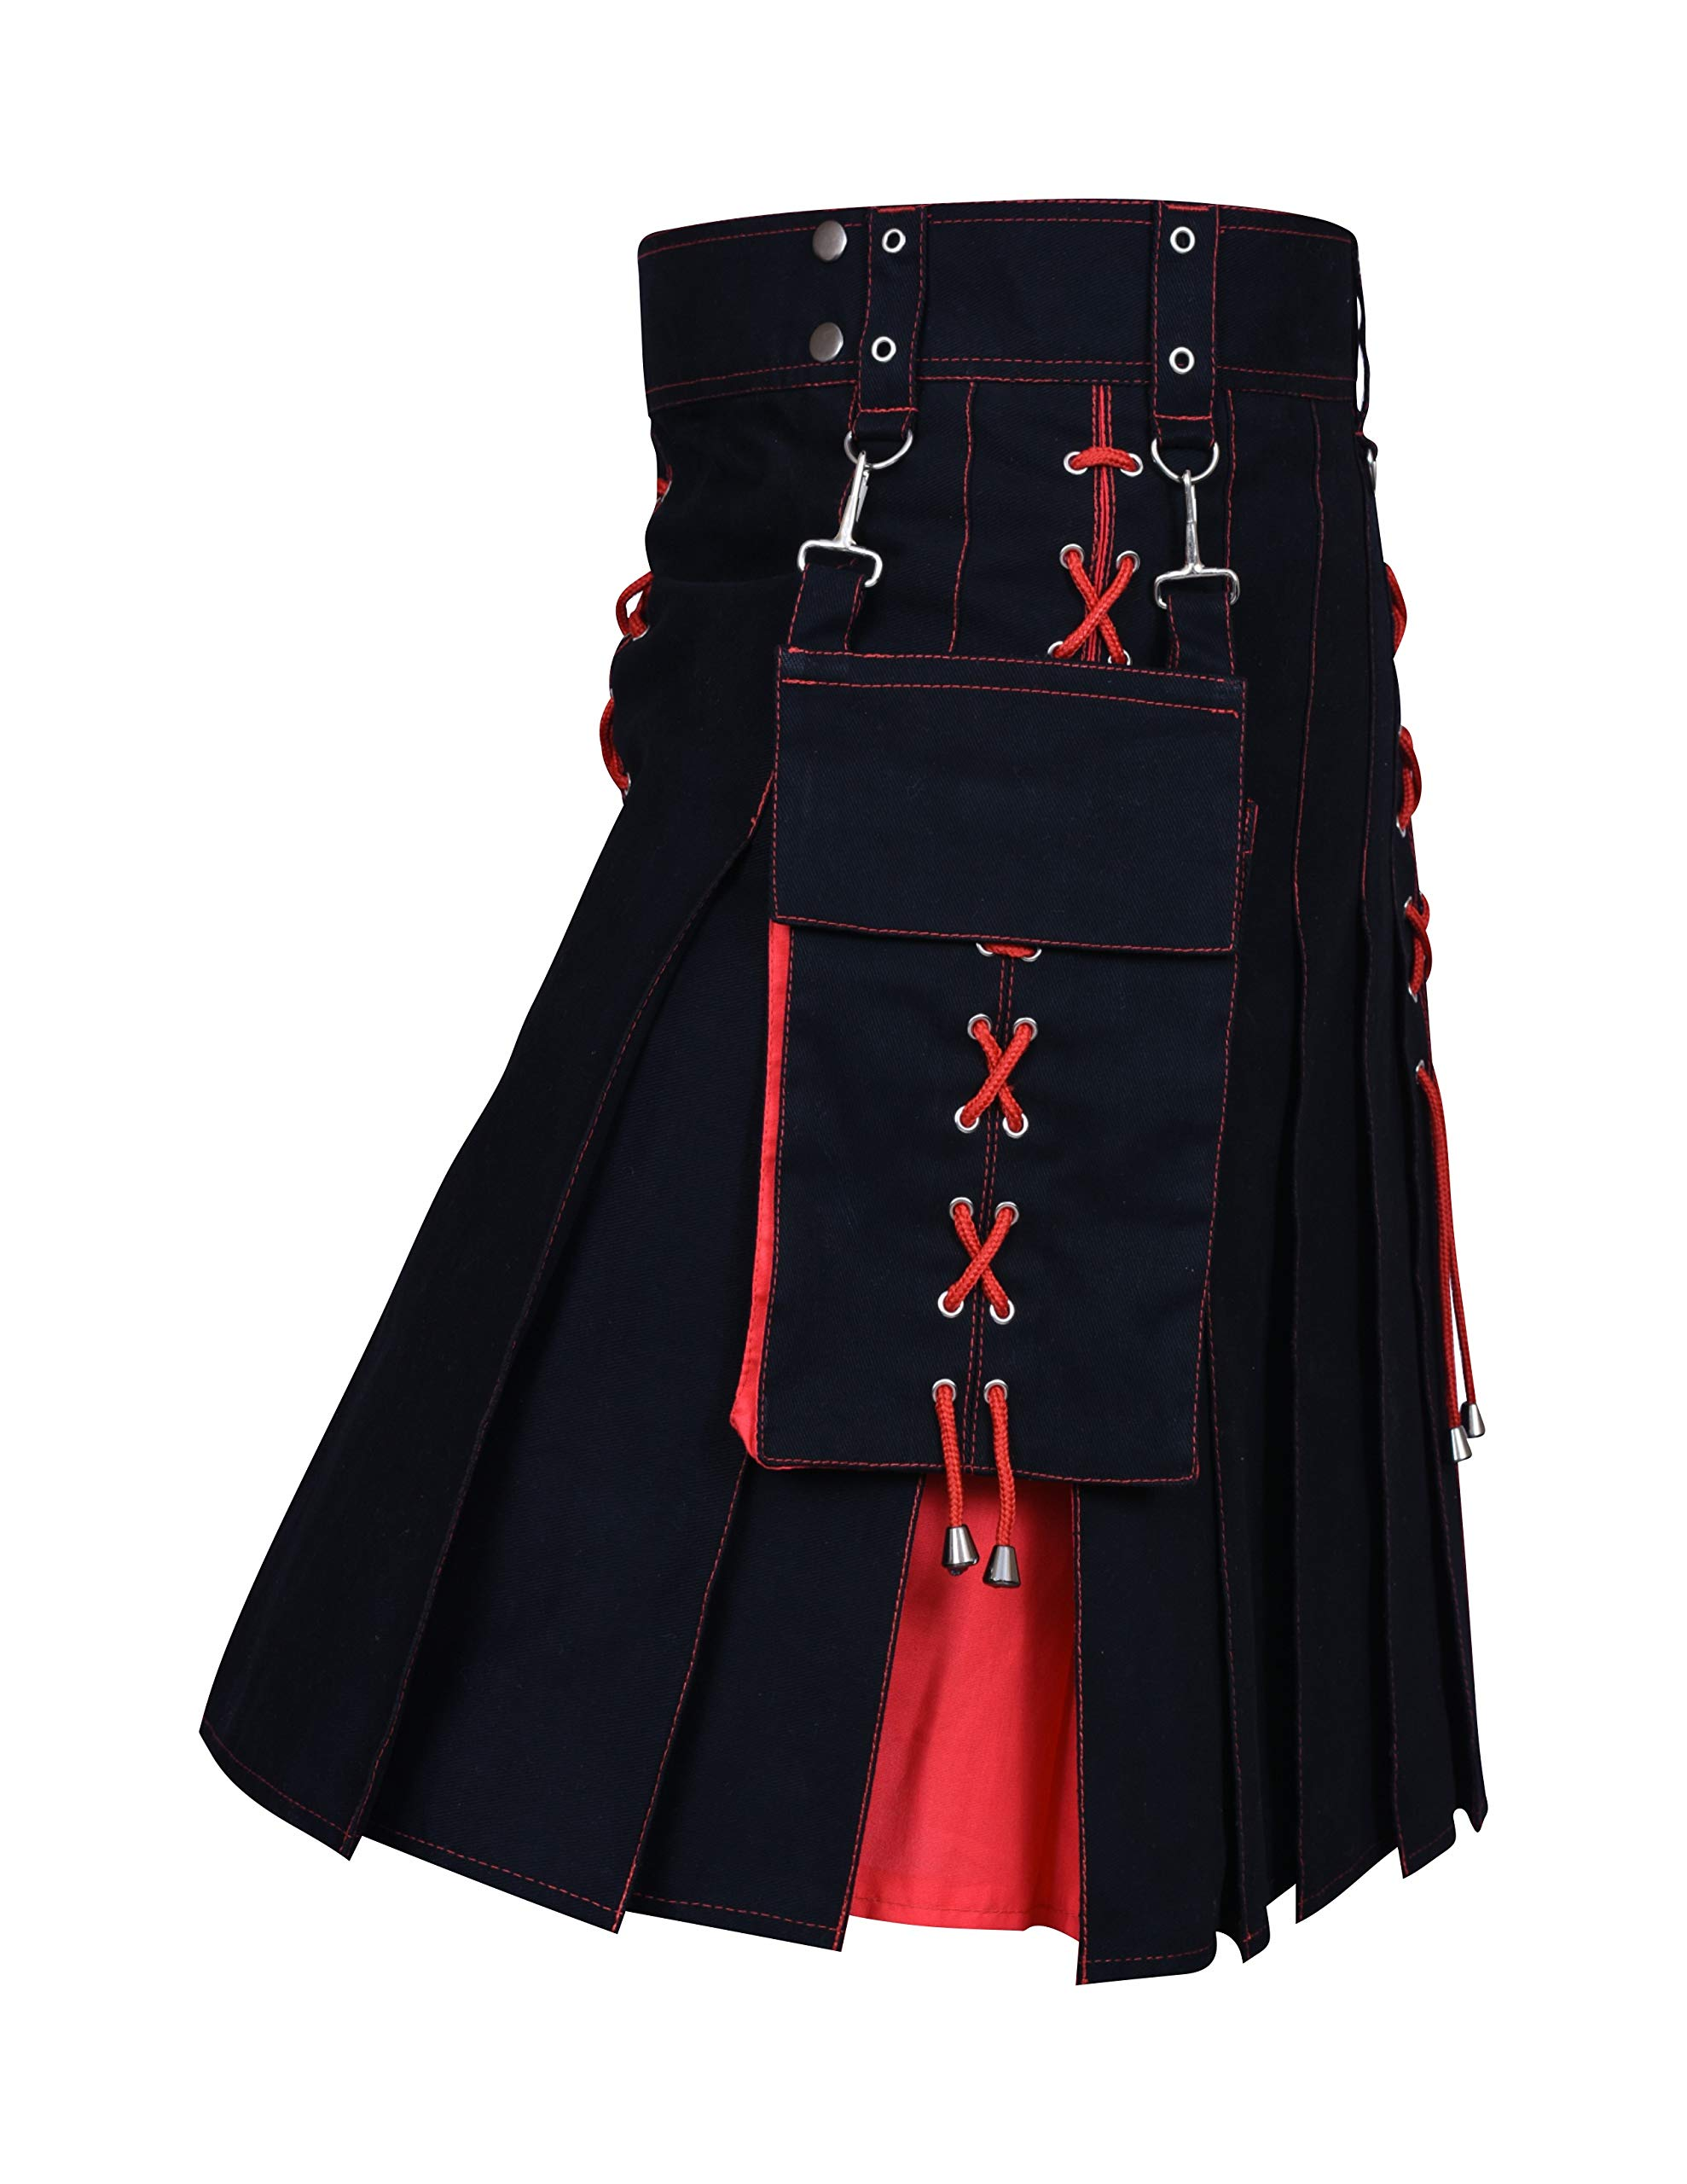 Utility Kilt Black and Red Hybrid Kilt New For Men's (40, Black/Red)